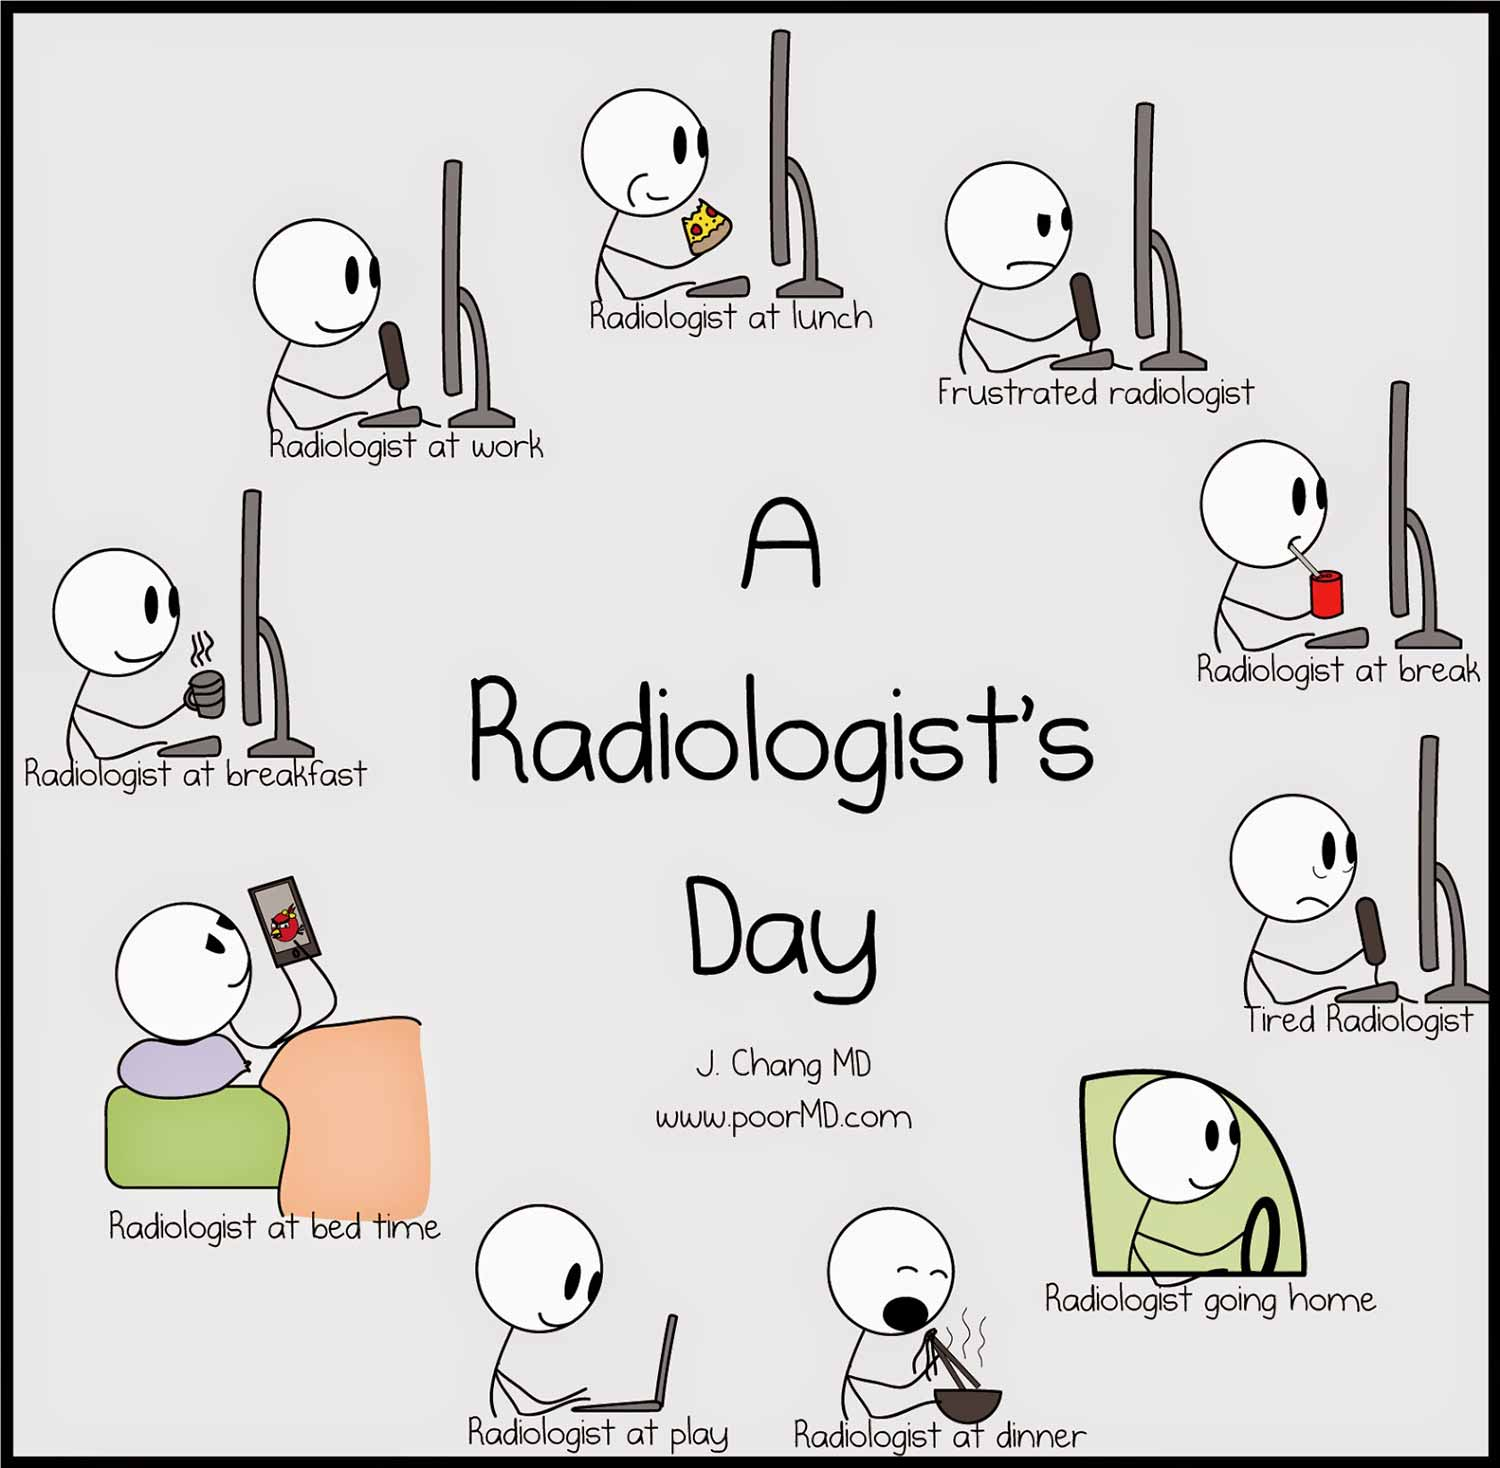 'A Radiologist's Day' by James at poormd.com - image reproduced with permission of the rights holder